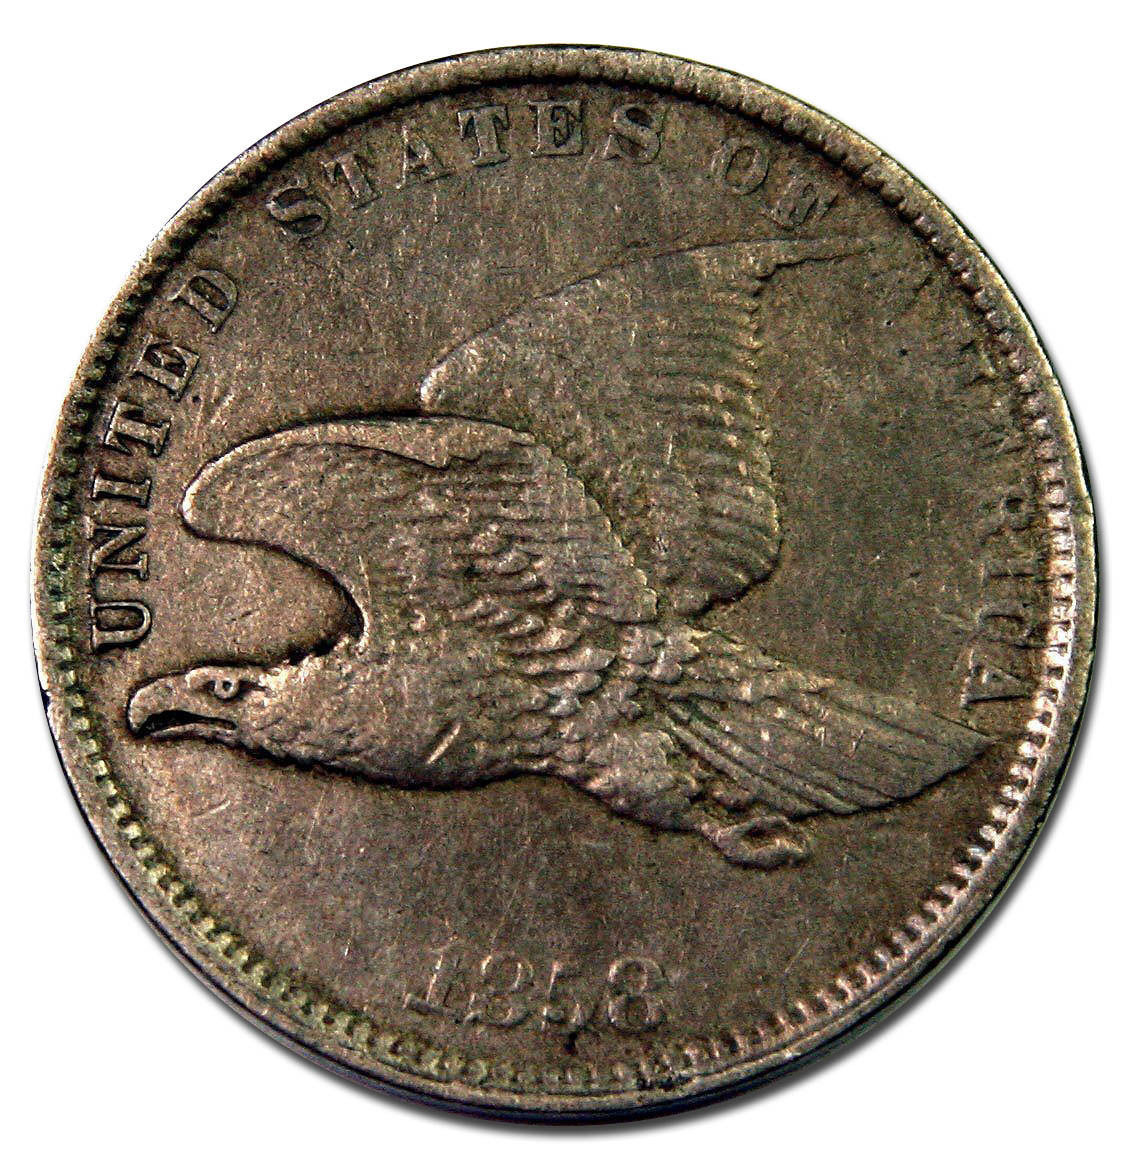 1858 Small Letters Flying Eagle Cent Coin Lot# A 913